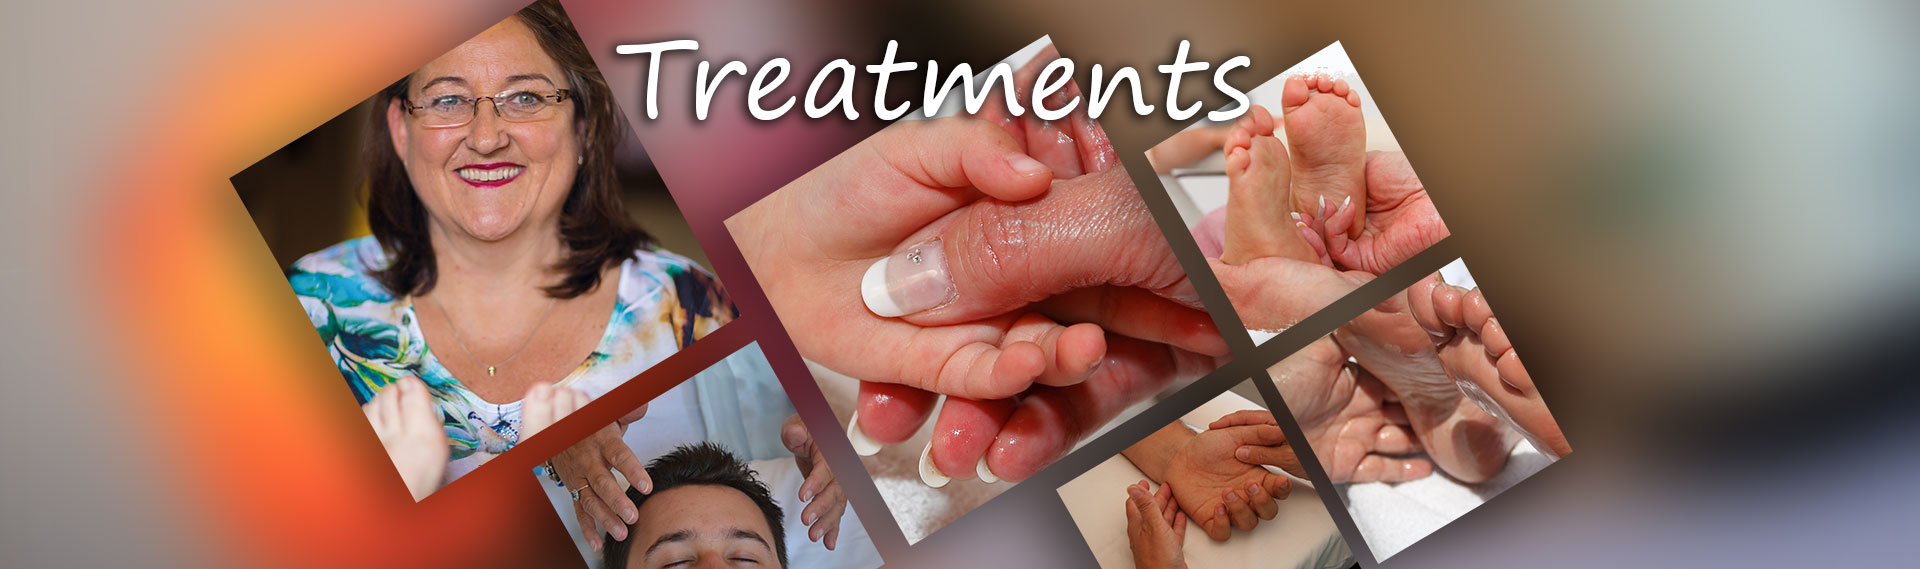 Banner--Treatments-V1.jpg